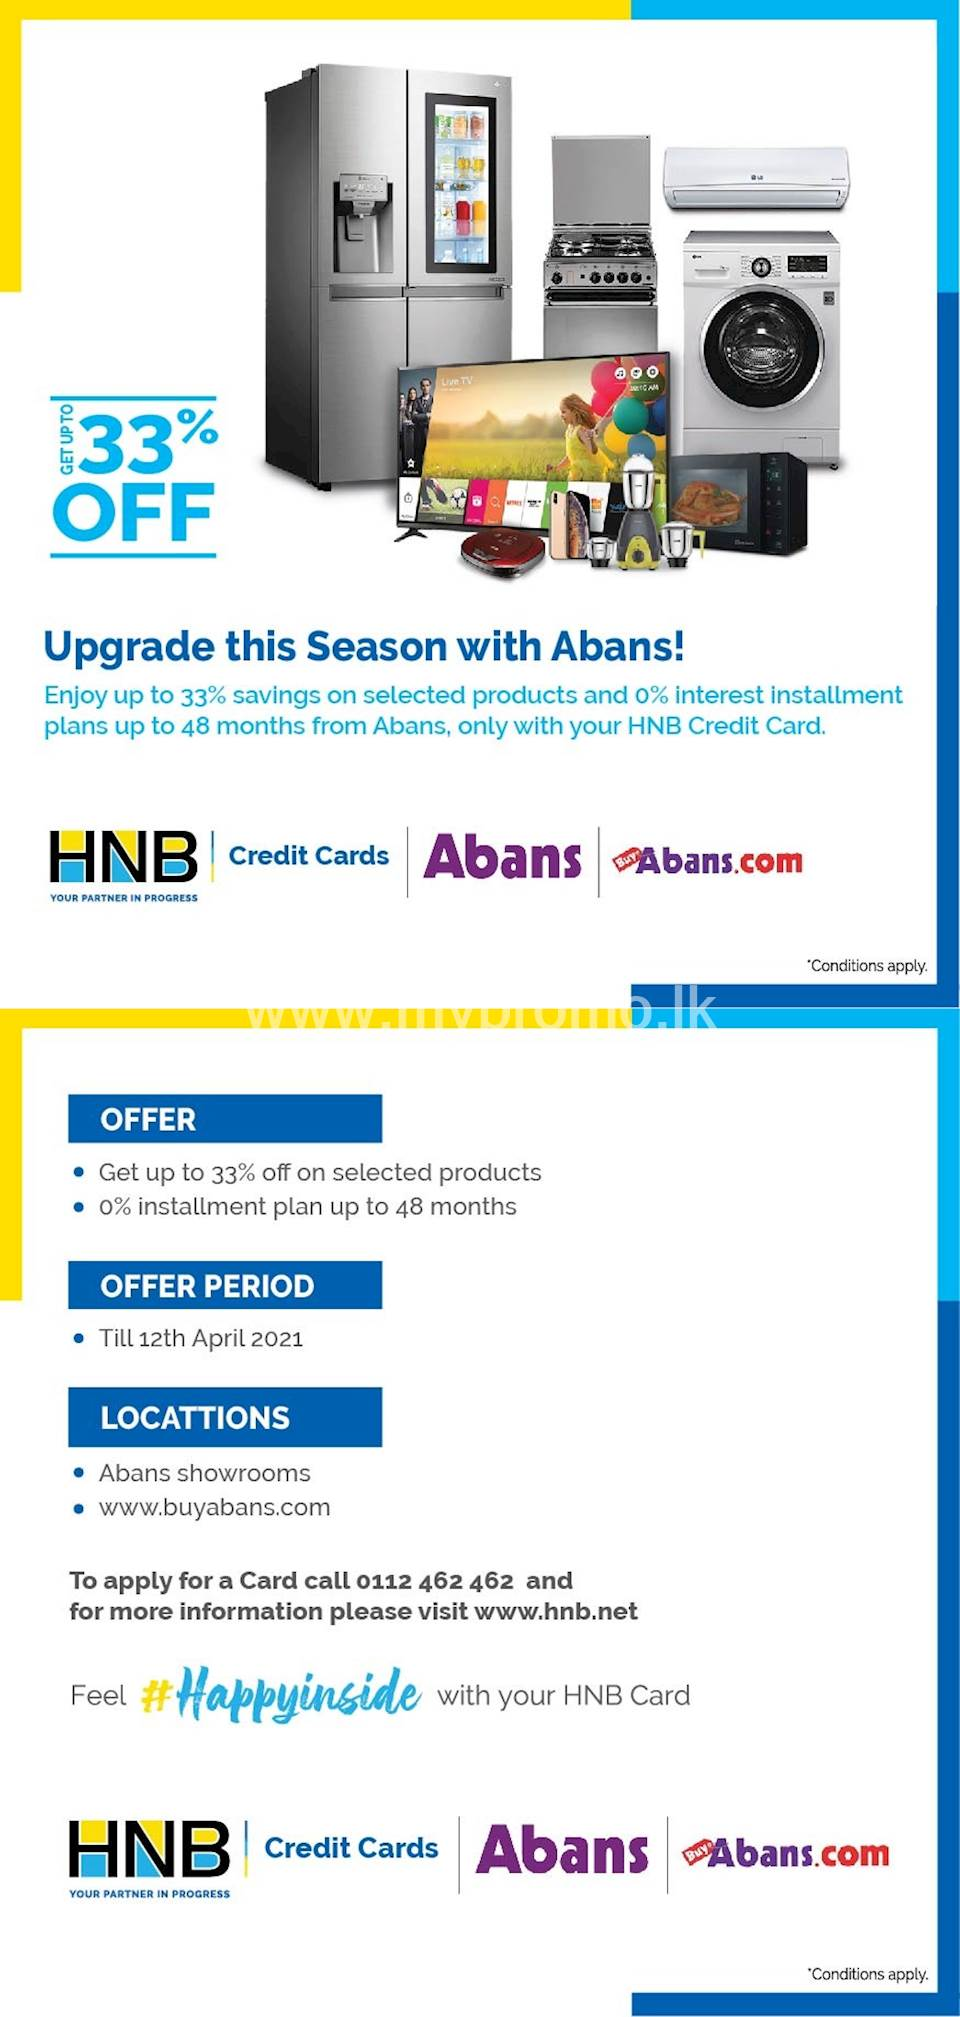 Enjoy up to 33% off on selected items & up to 48-month 0% installments at Abans Showrooms and buyabans.com with your HNB Credit Card